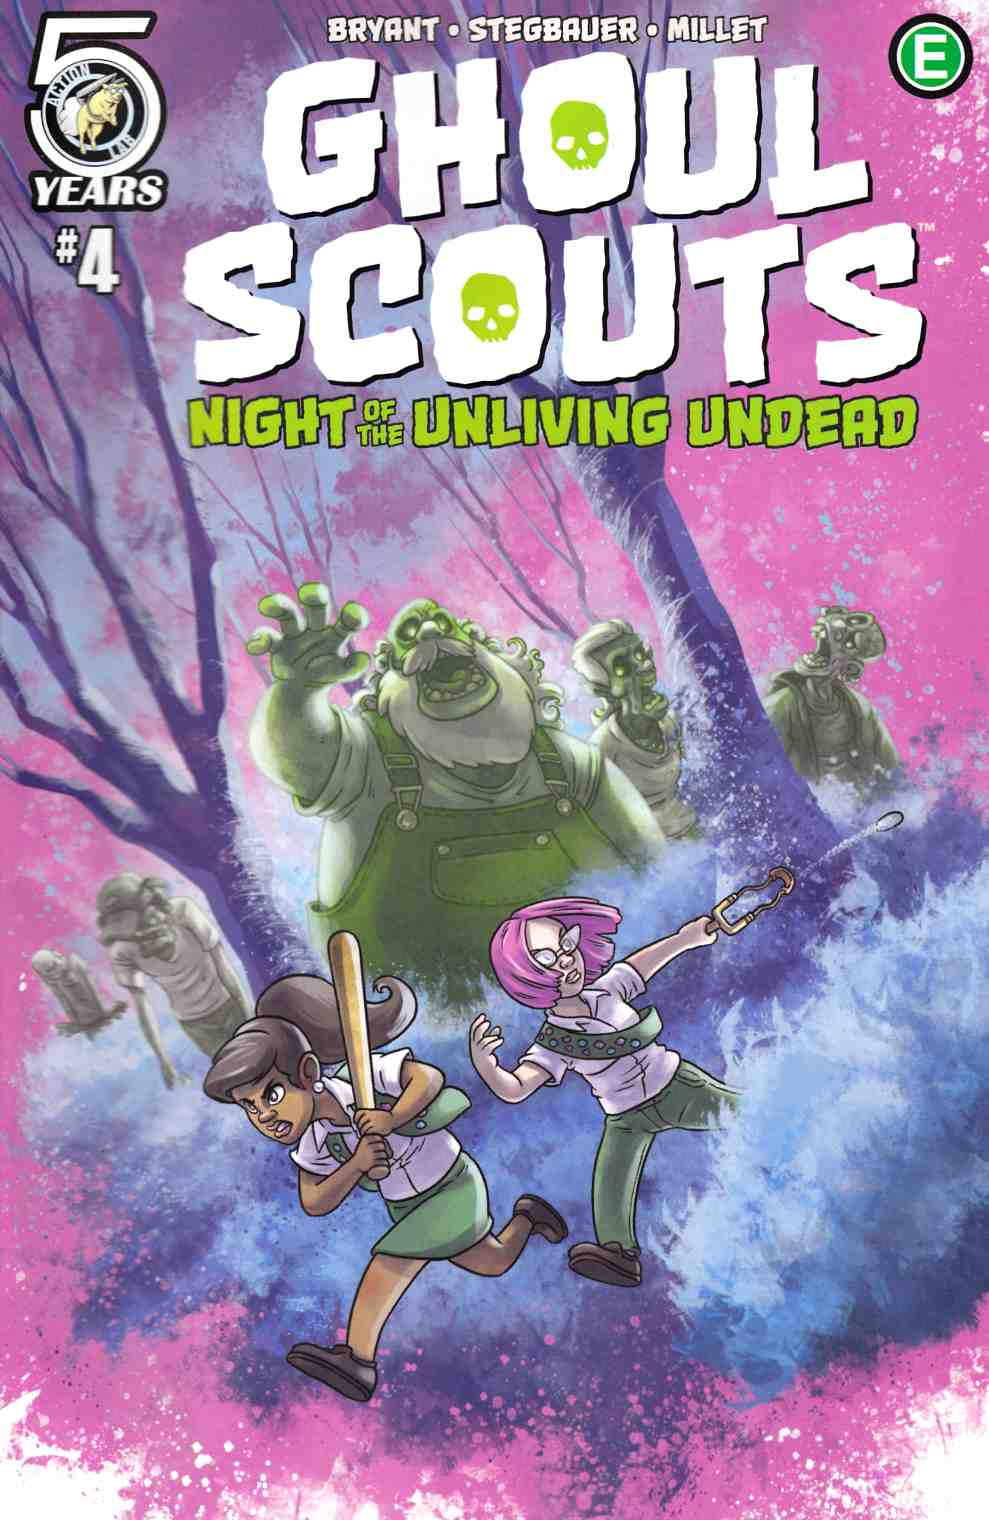 Ghoul Scouts Night of the Unliving Undead #4 Cover C [Action Lab Comic] THUMBNAIL